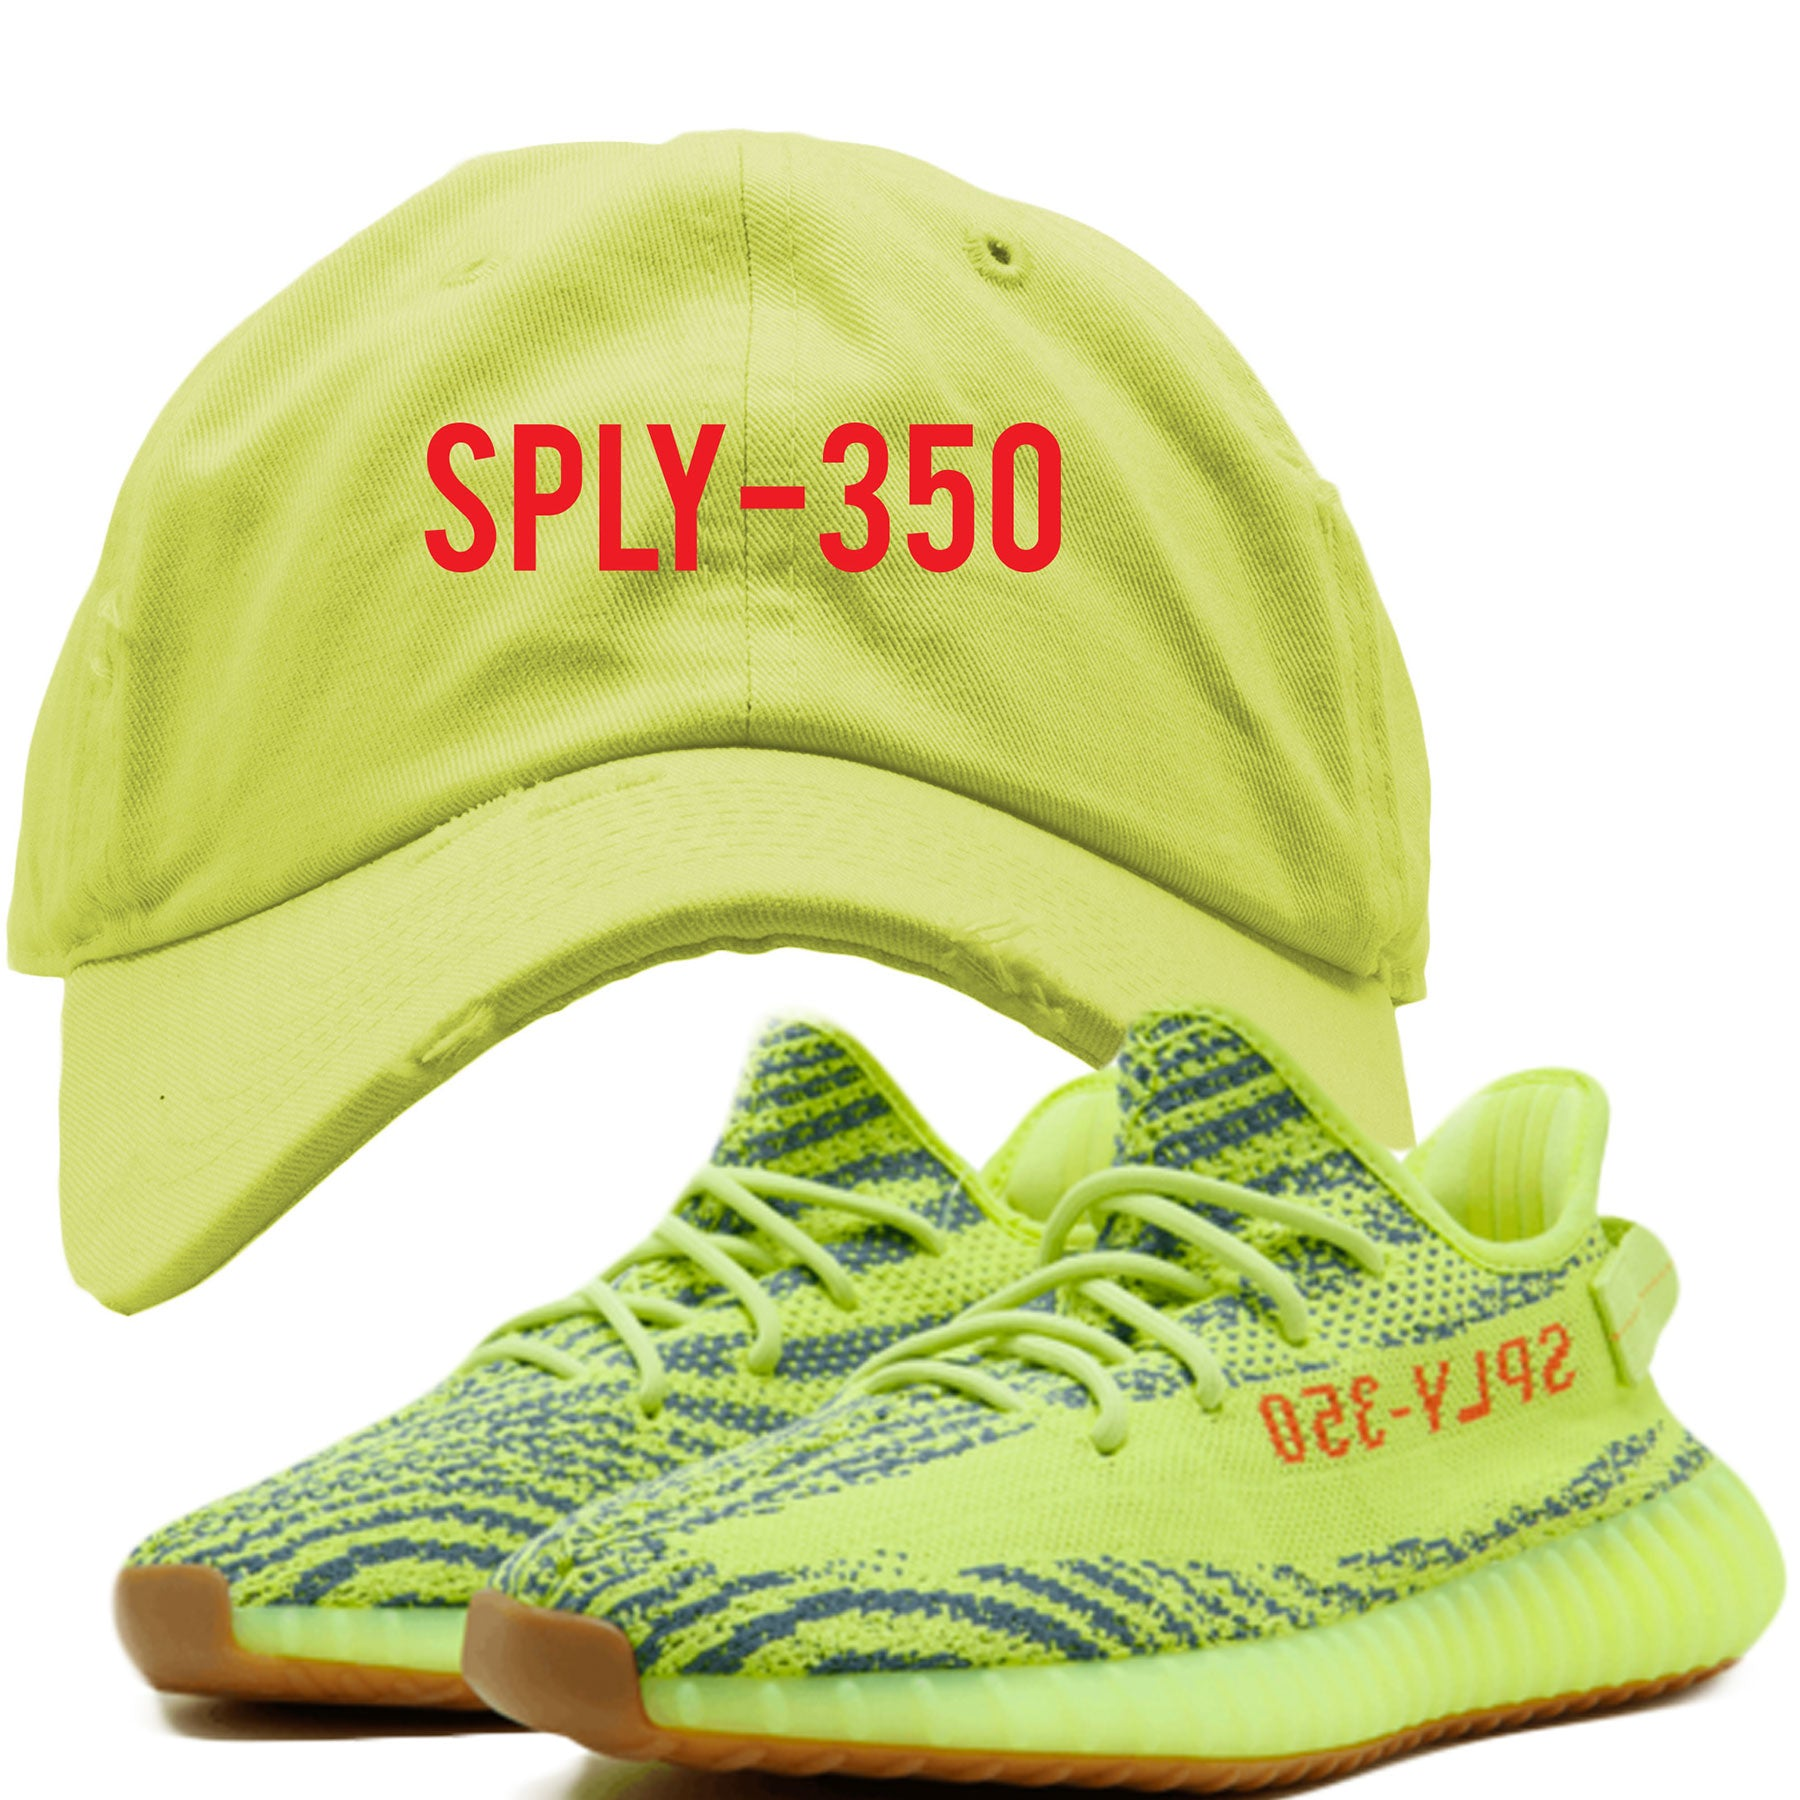 bde16b7e480d4 Embroidered on the front of the Frozen Yellow Yeezy 350 Boost V2 sneakers  is the word